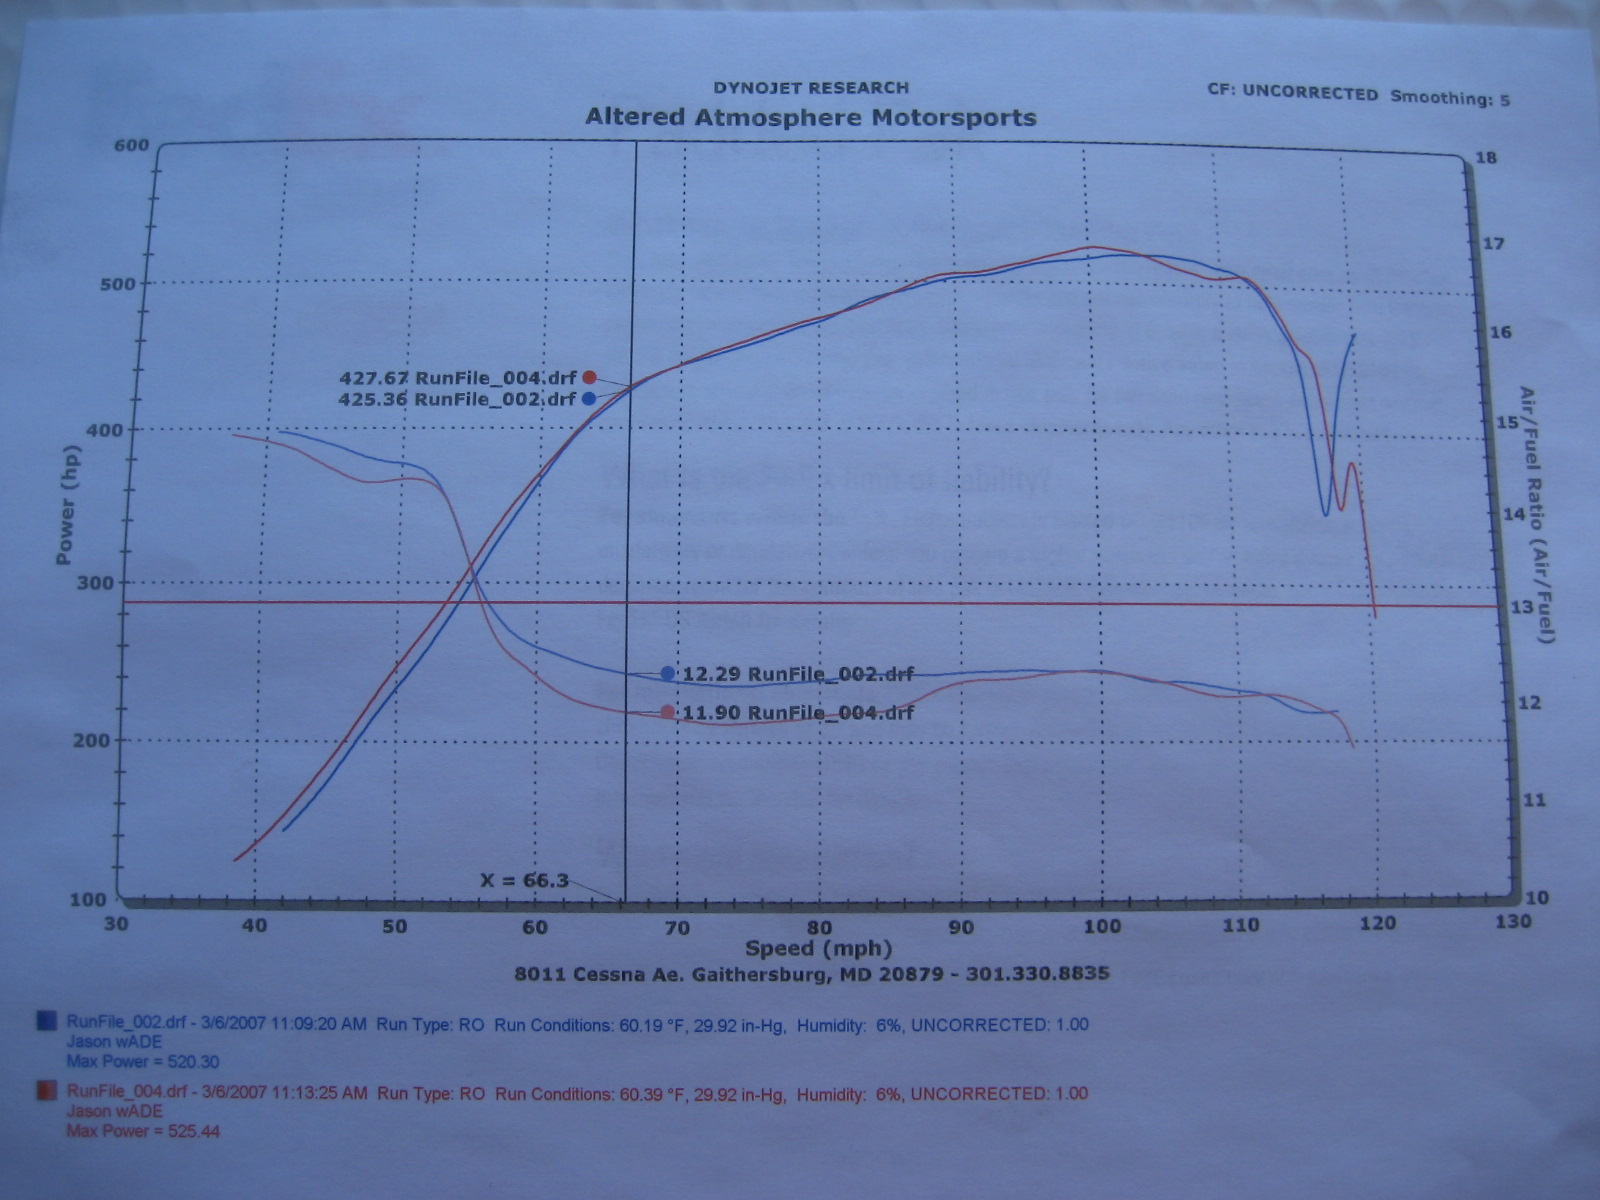 Mercedes-Benz CL600 Dyno Graph Results